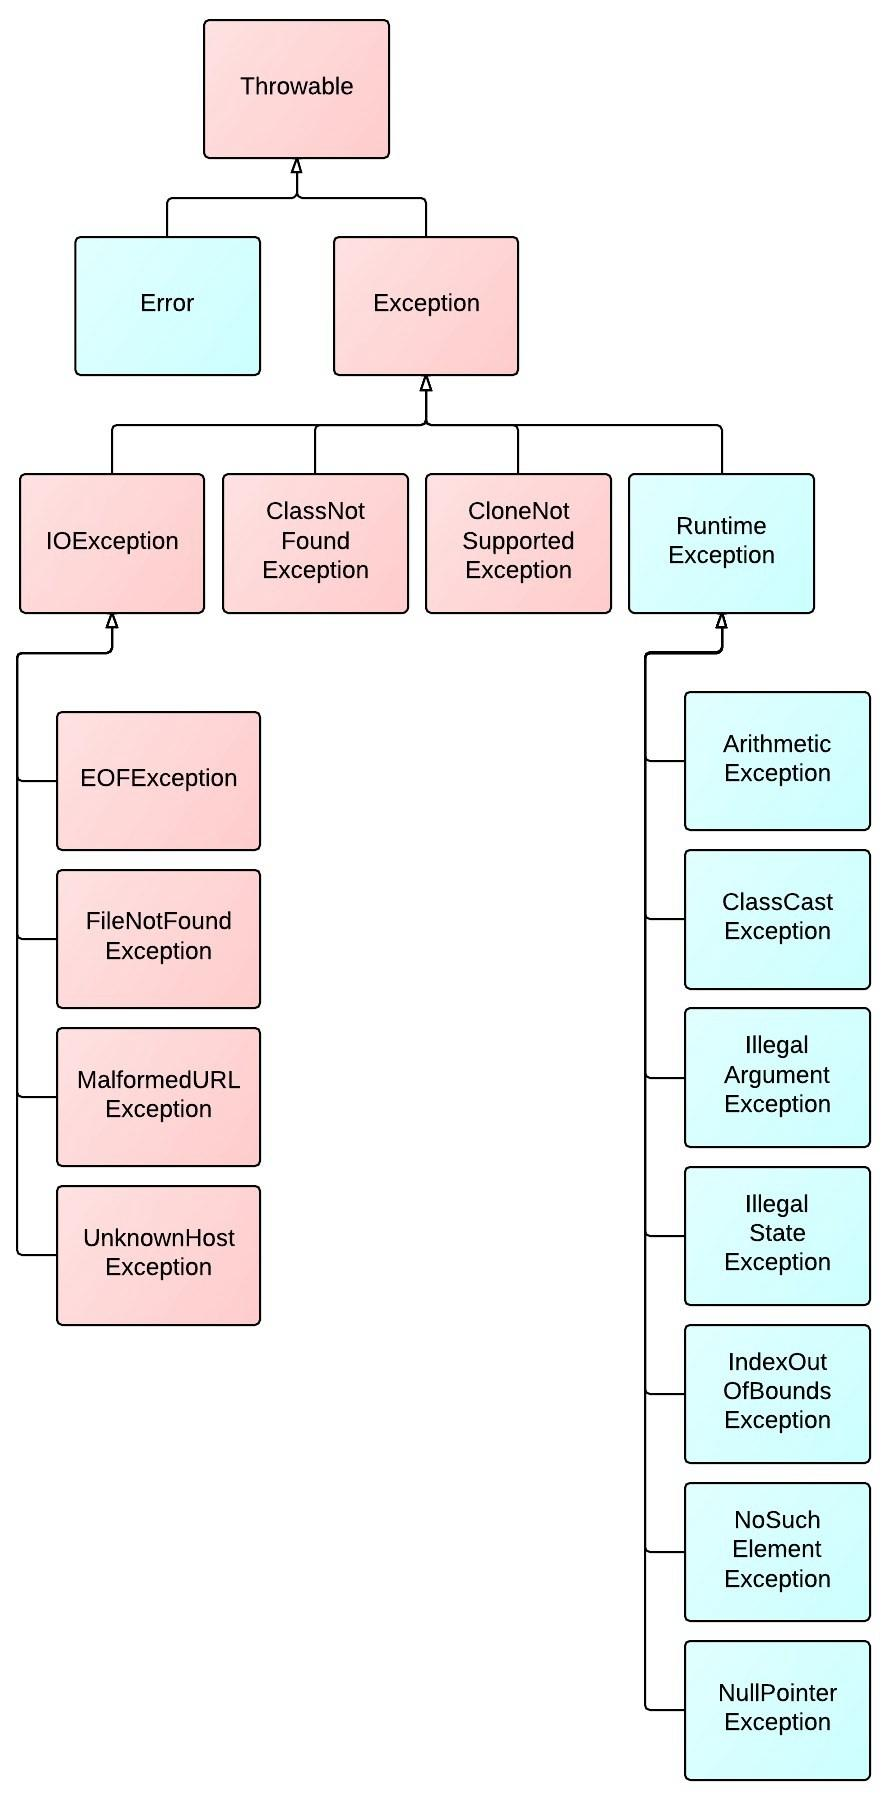 Java R&D engineer knowledge point summary - Programmer Sought